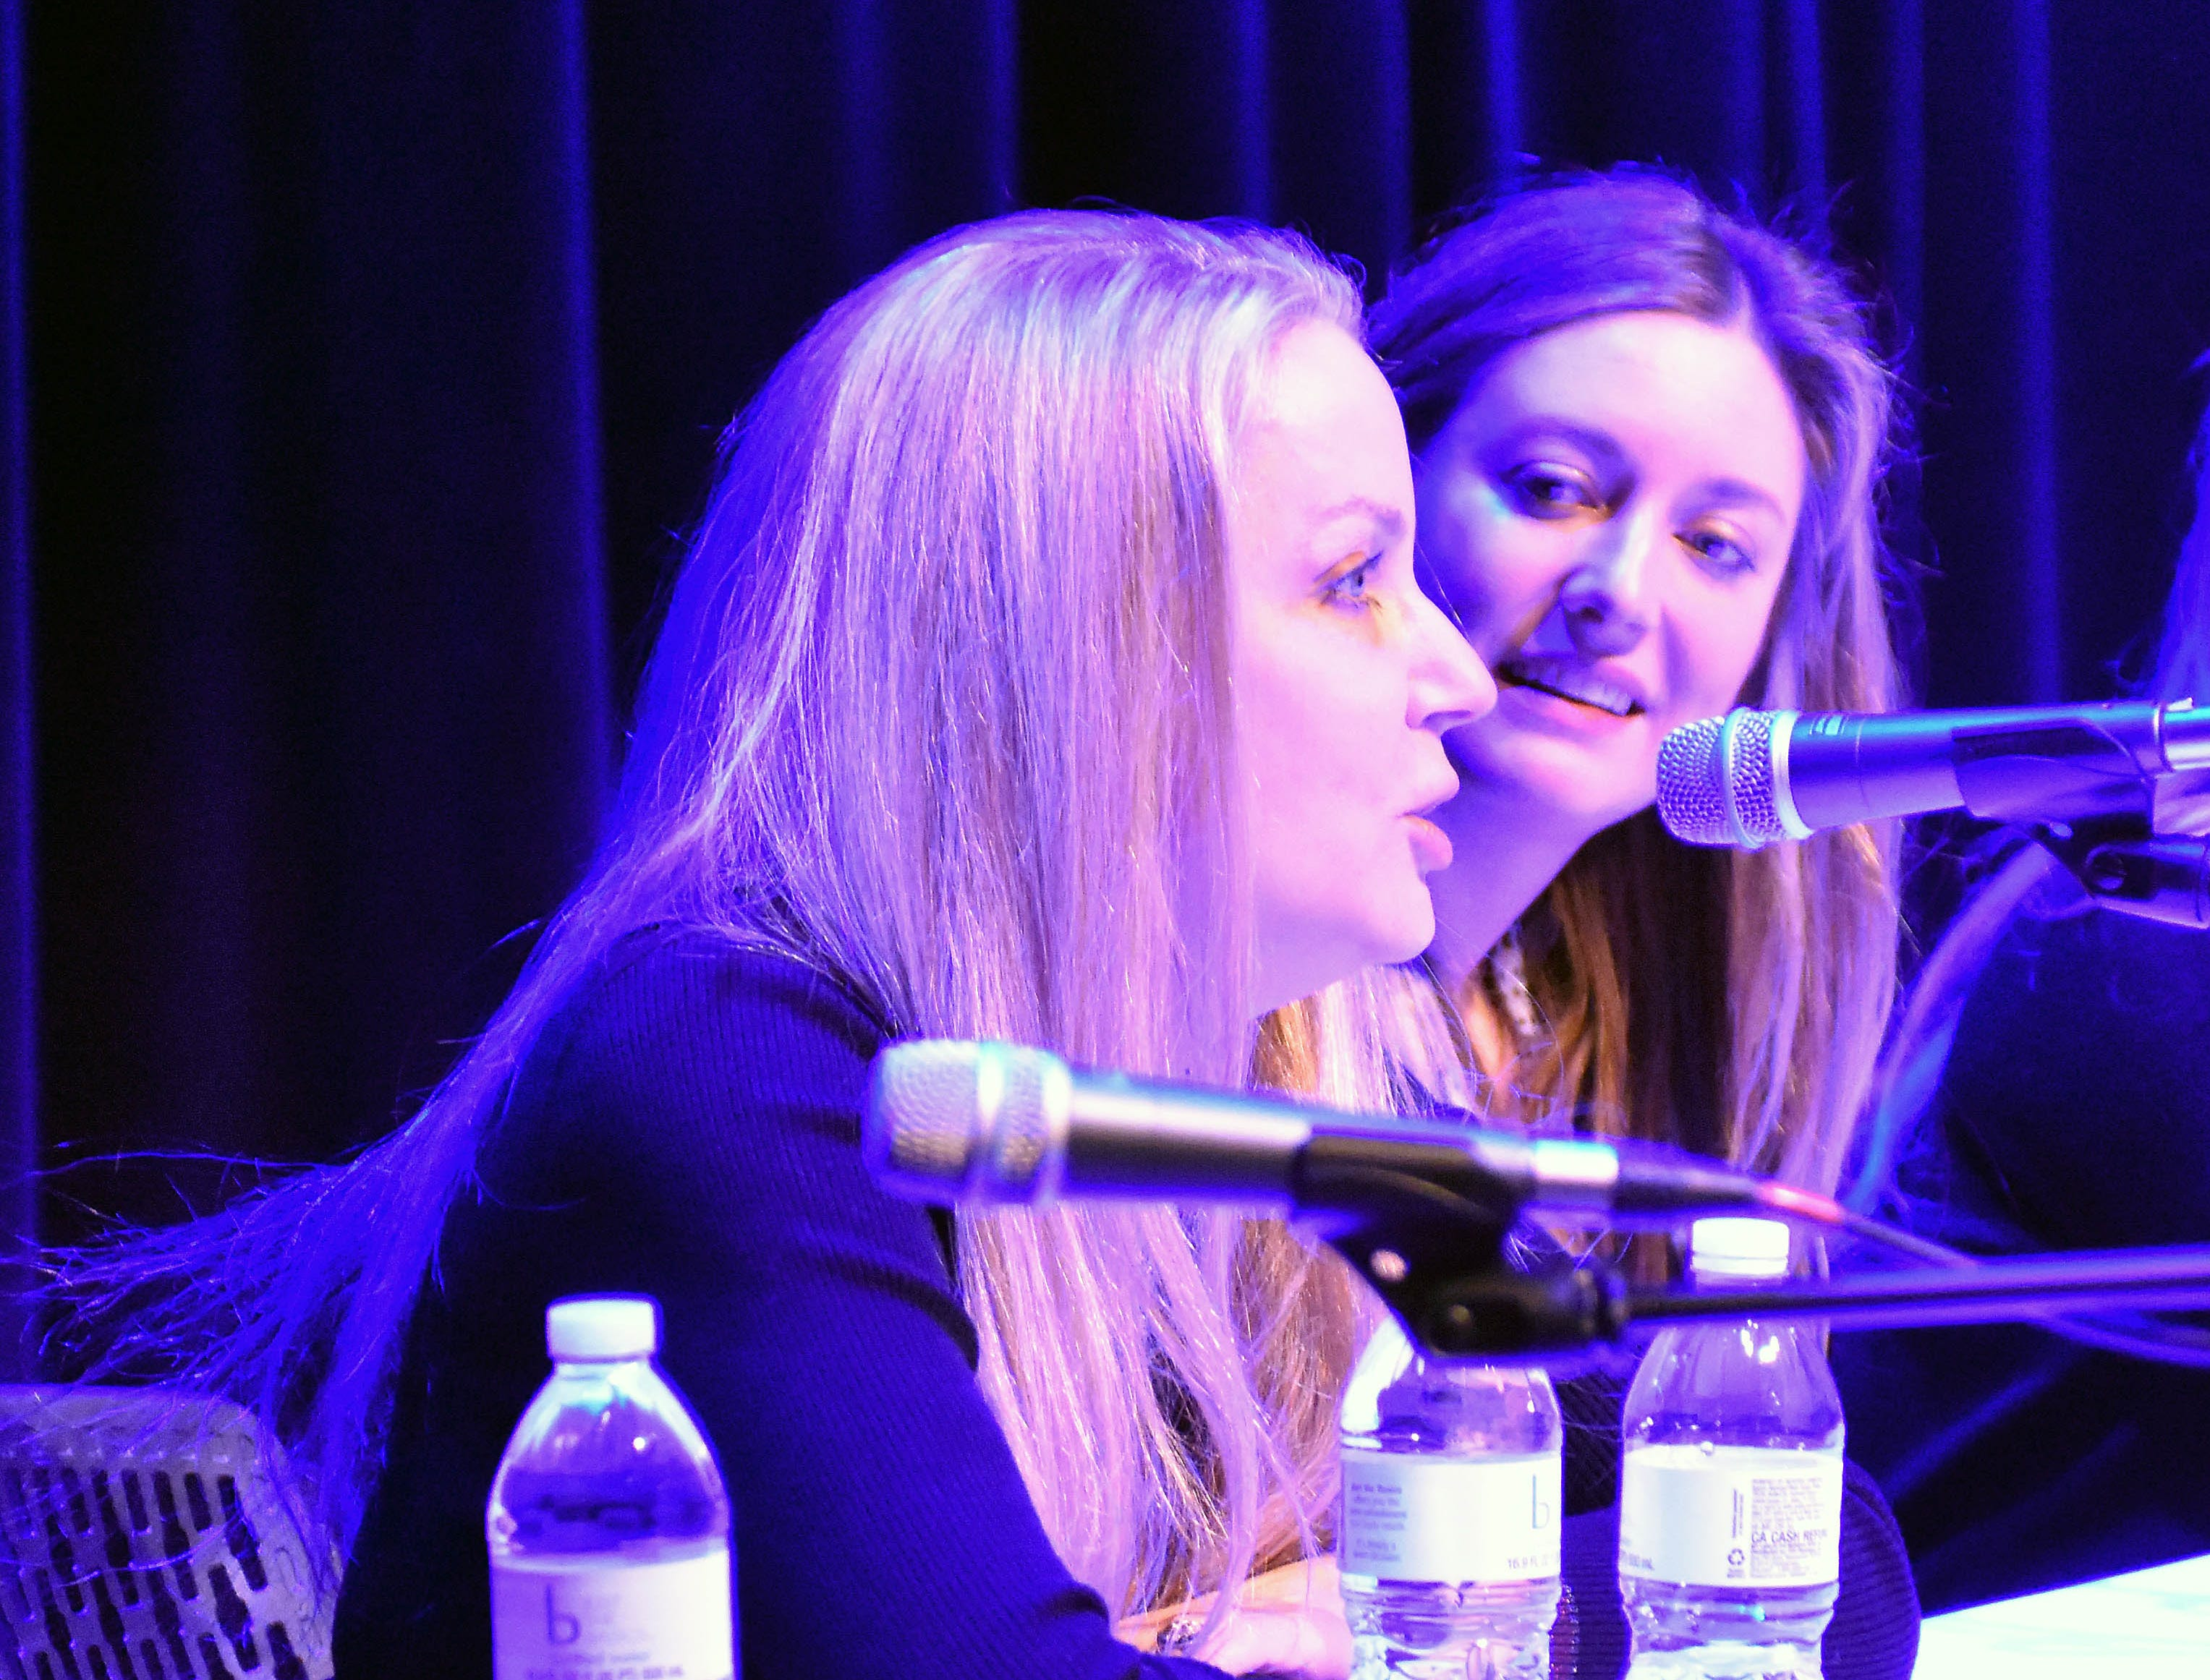 """From left, costume designer Mary T. Quigley (""""The Big Bang Theory,"""" """"Roseanne"""") and actress Zoe Perry (""""Young Sheldon"""") participate in the """"Making It Work in Hollywood"""" panel Saturday, Feb. 23, 2019, at the Rio Grande Theatre, part of the Las Cruces International Film Festival."""